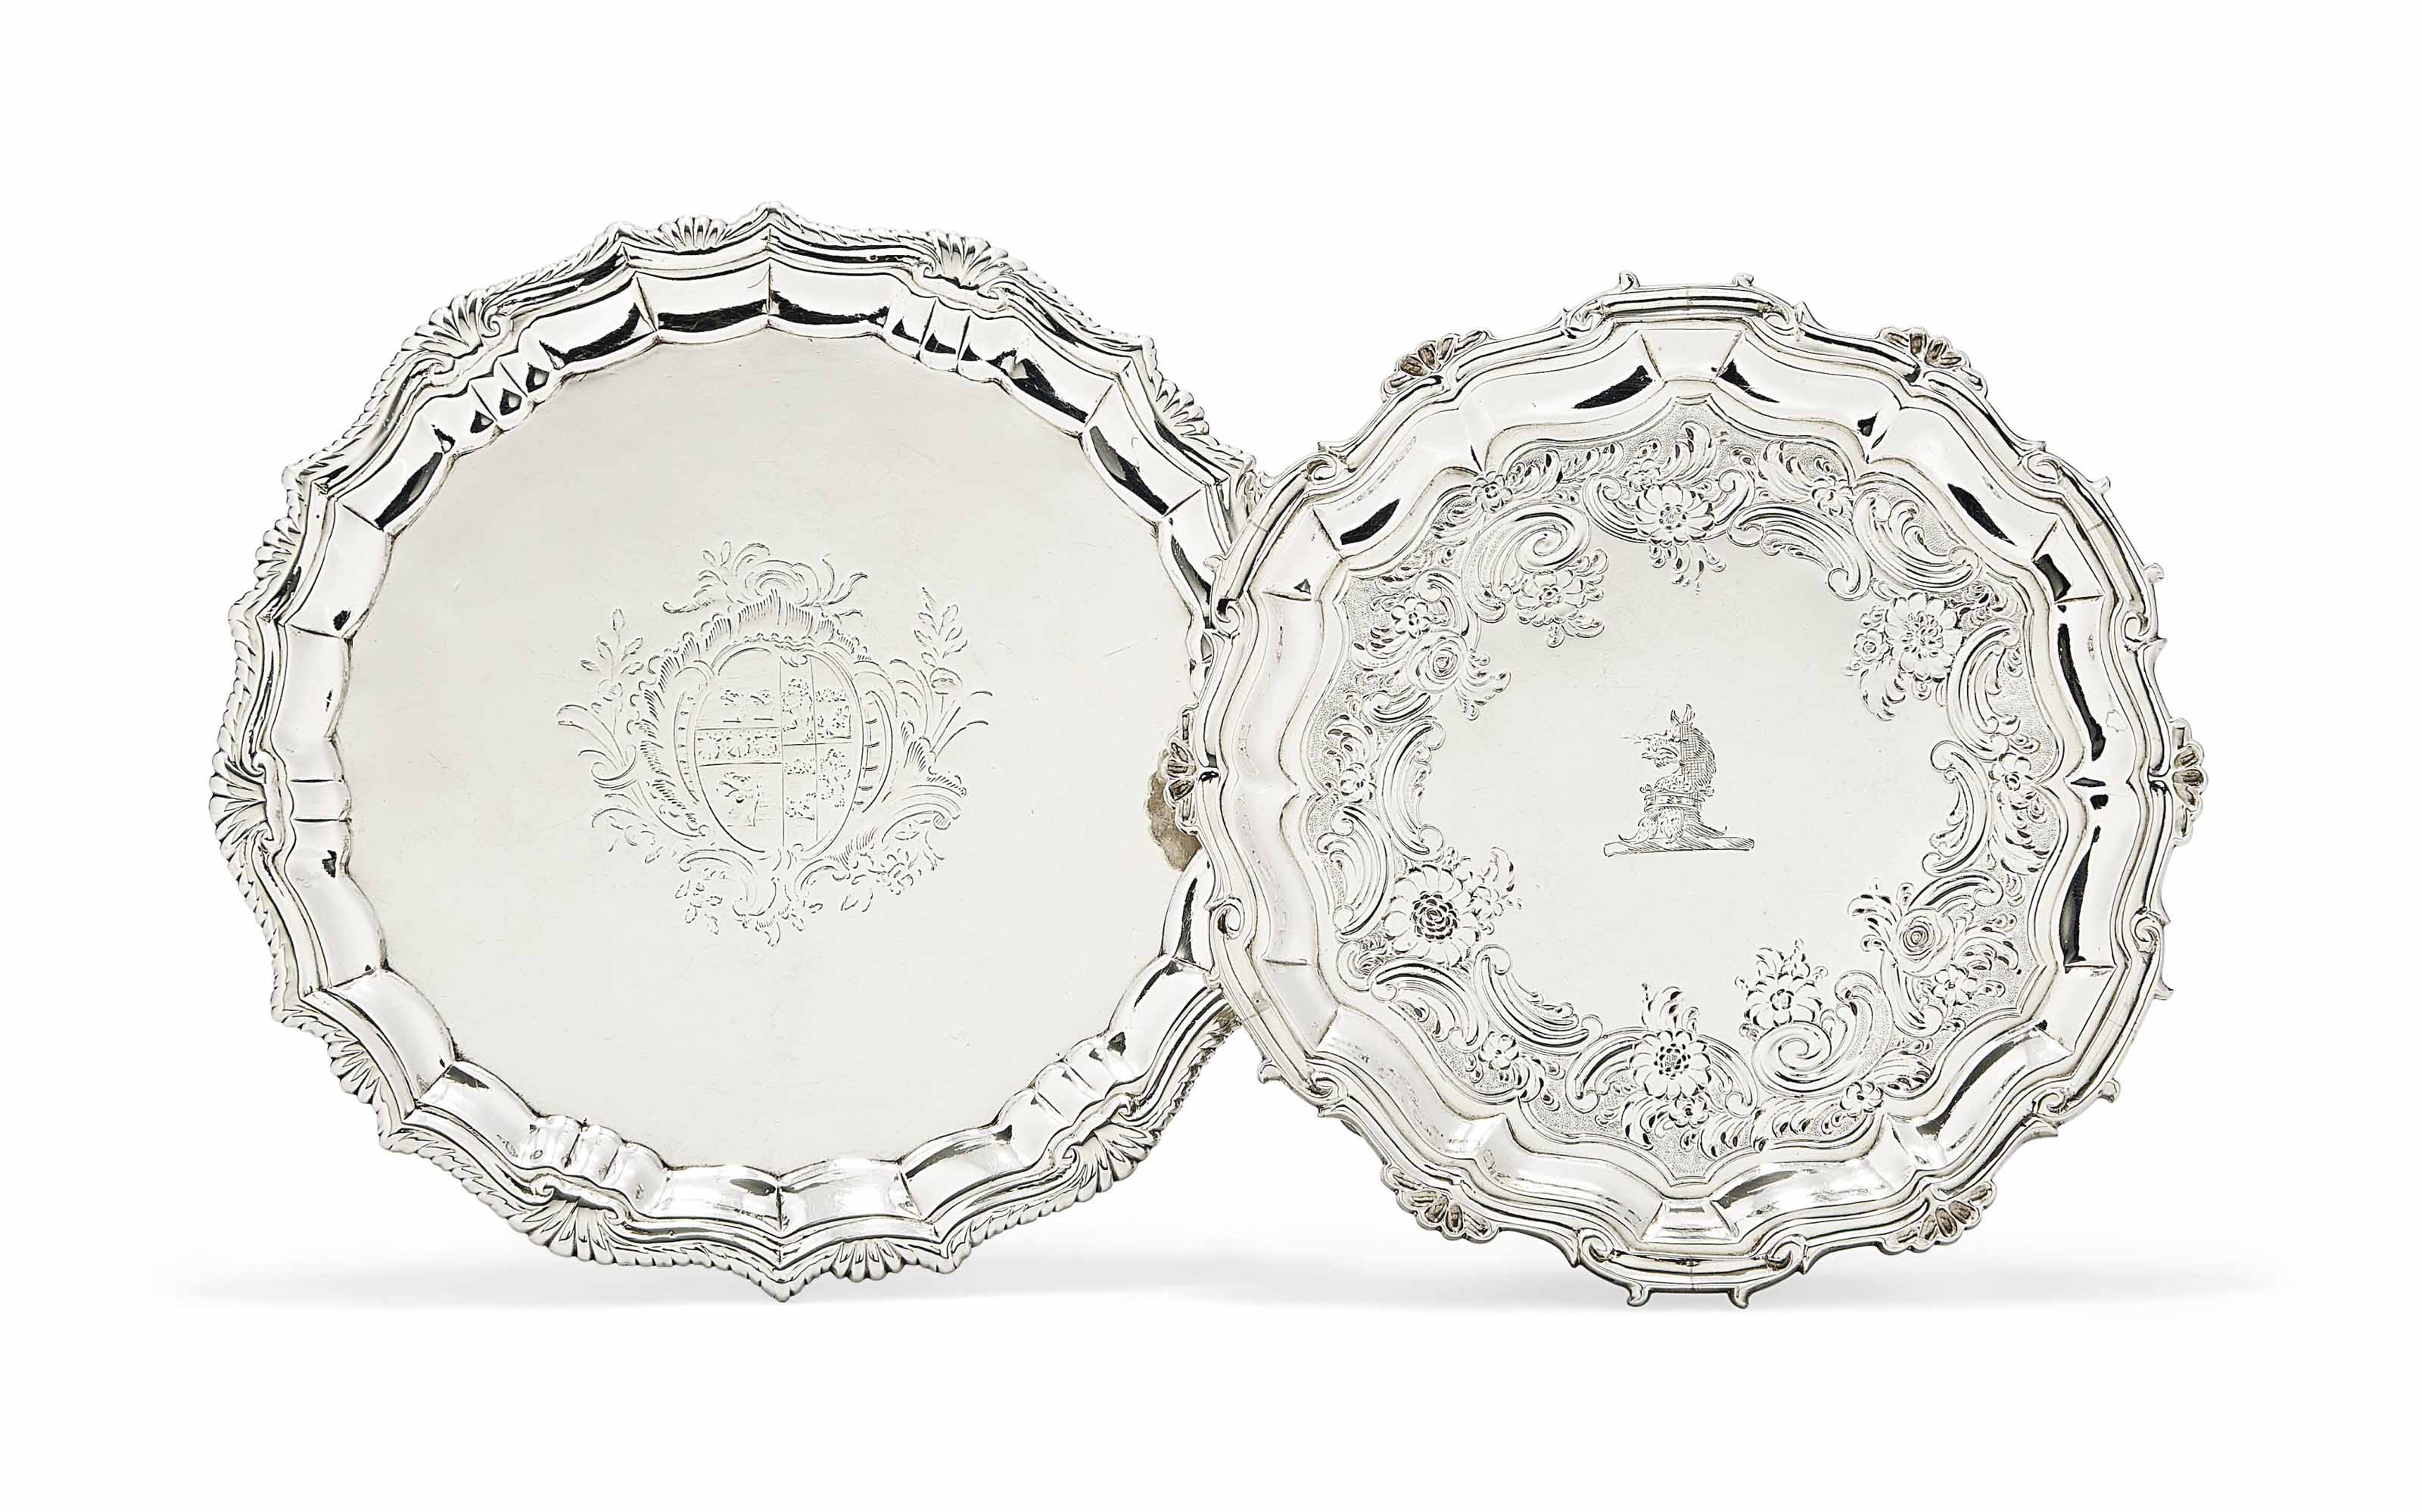 A SMALL GEORGE II SILVER SALVER